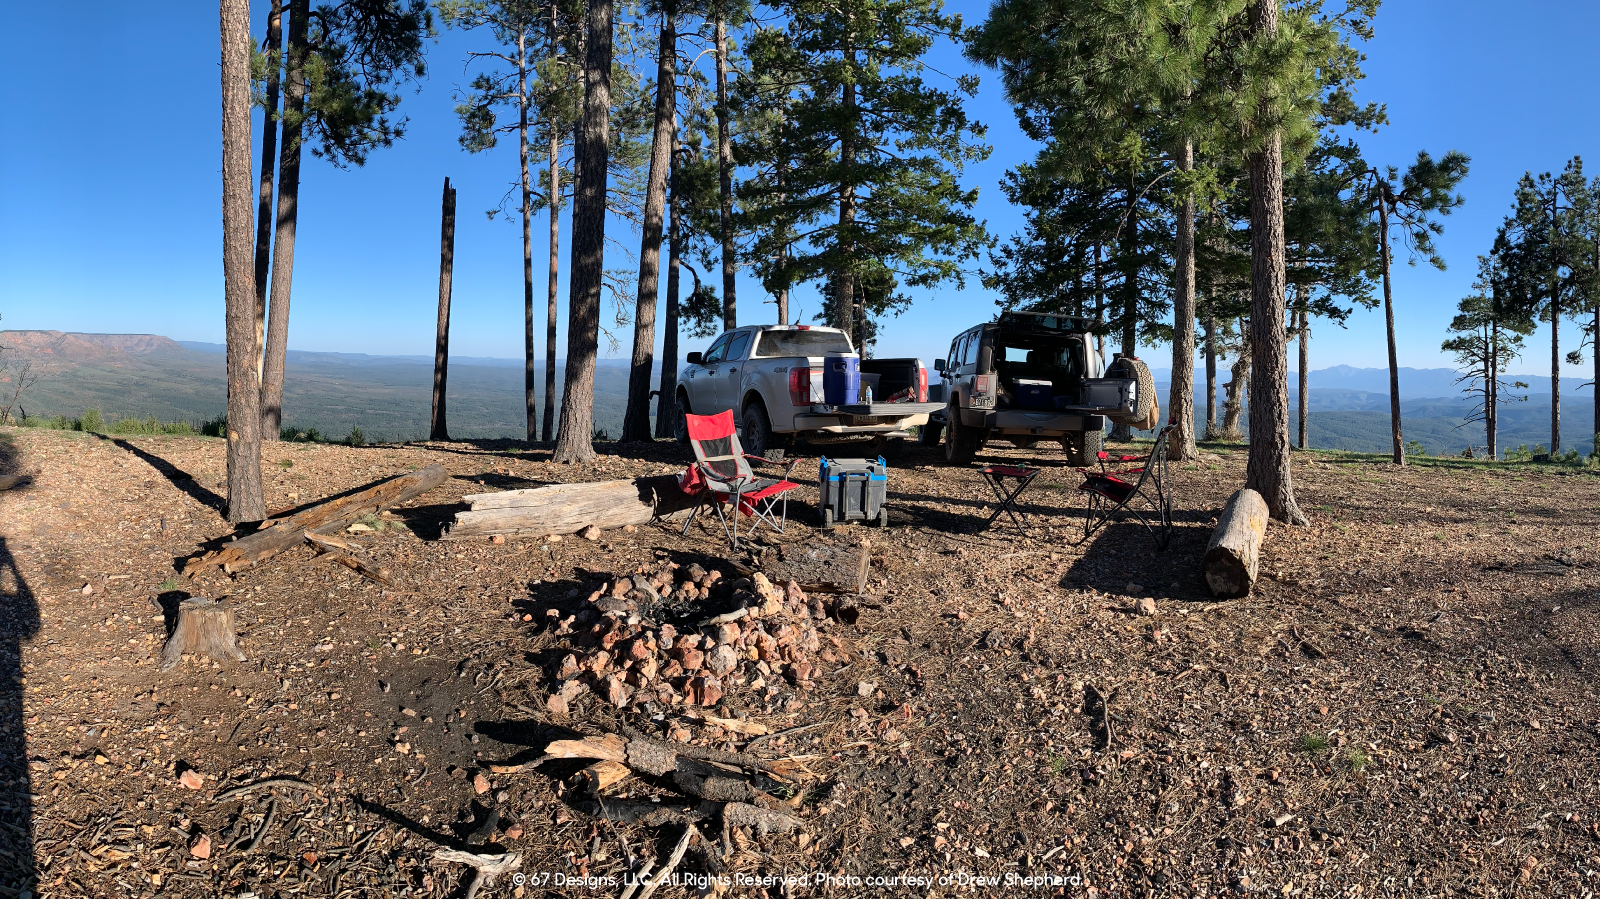 Camping with Ford Ranger and Jeep Wrangler